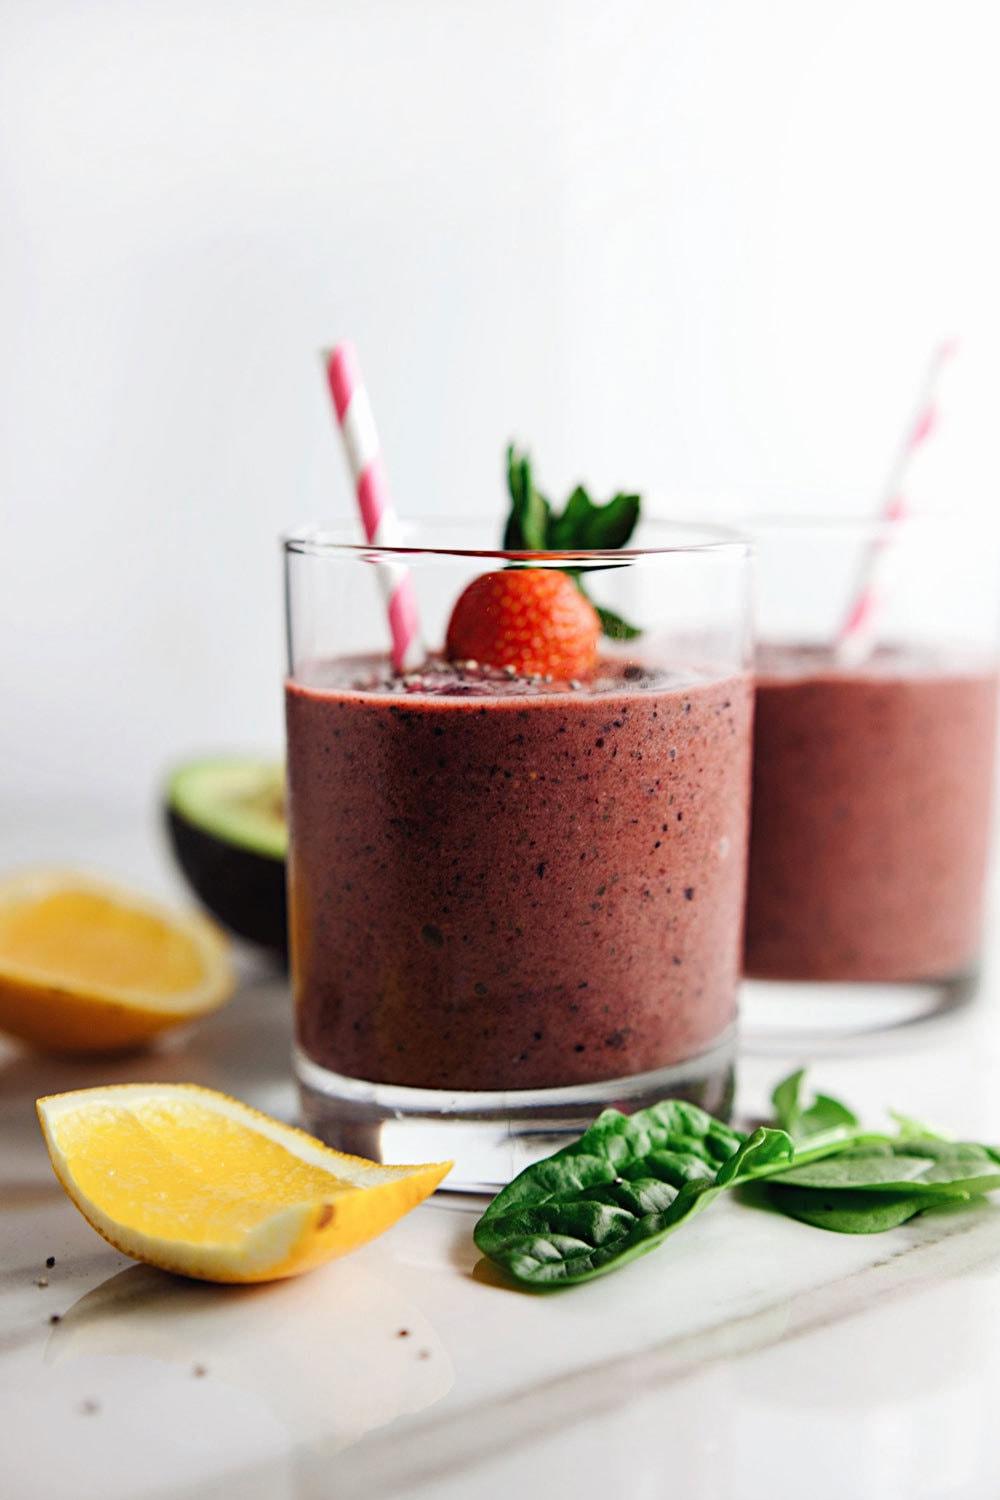 clear glasses filled with purple berry smoothie with pink striped straws in them on white counter with vegetables and fruit arranged around glasses.